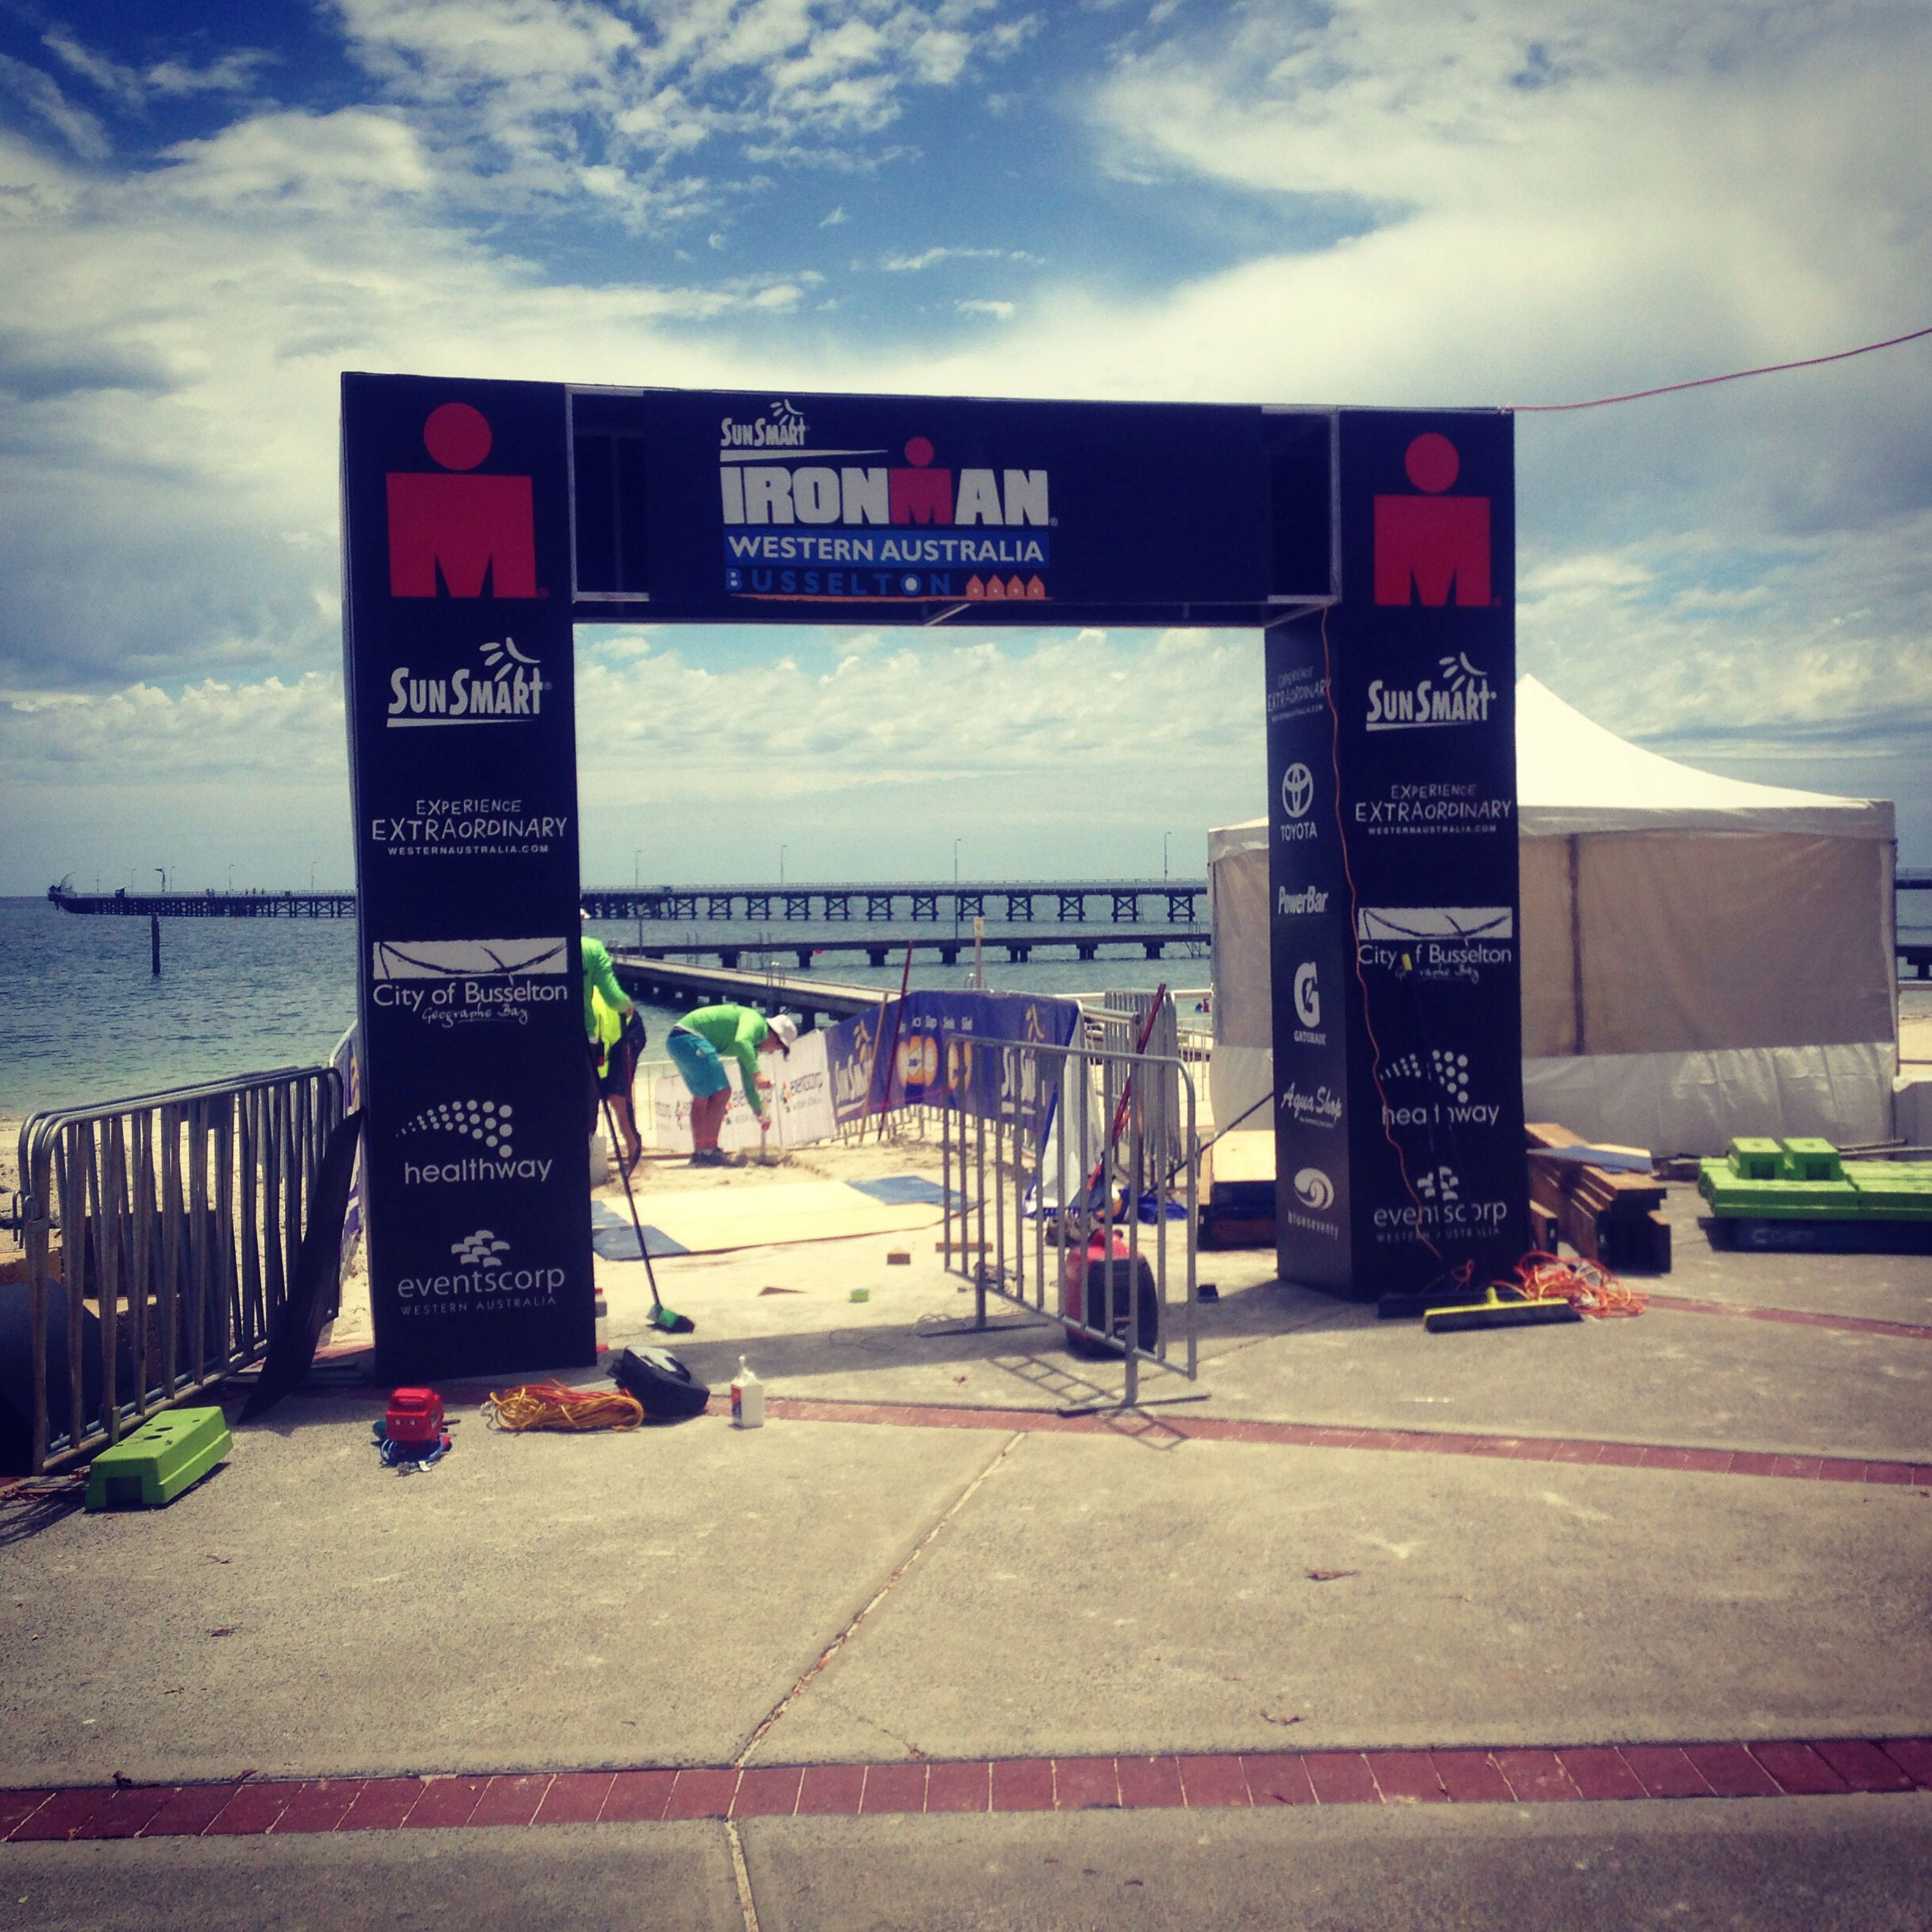 Western Australia. Perth. Busselton. Ironman event. Will nvm forget the joy n pain while doing the race.